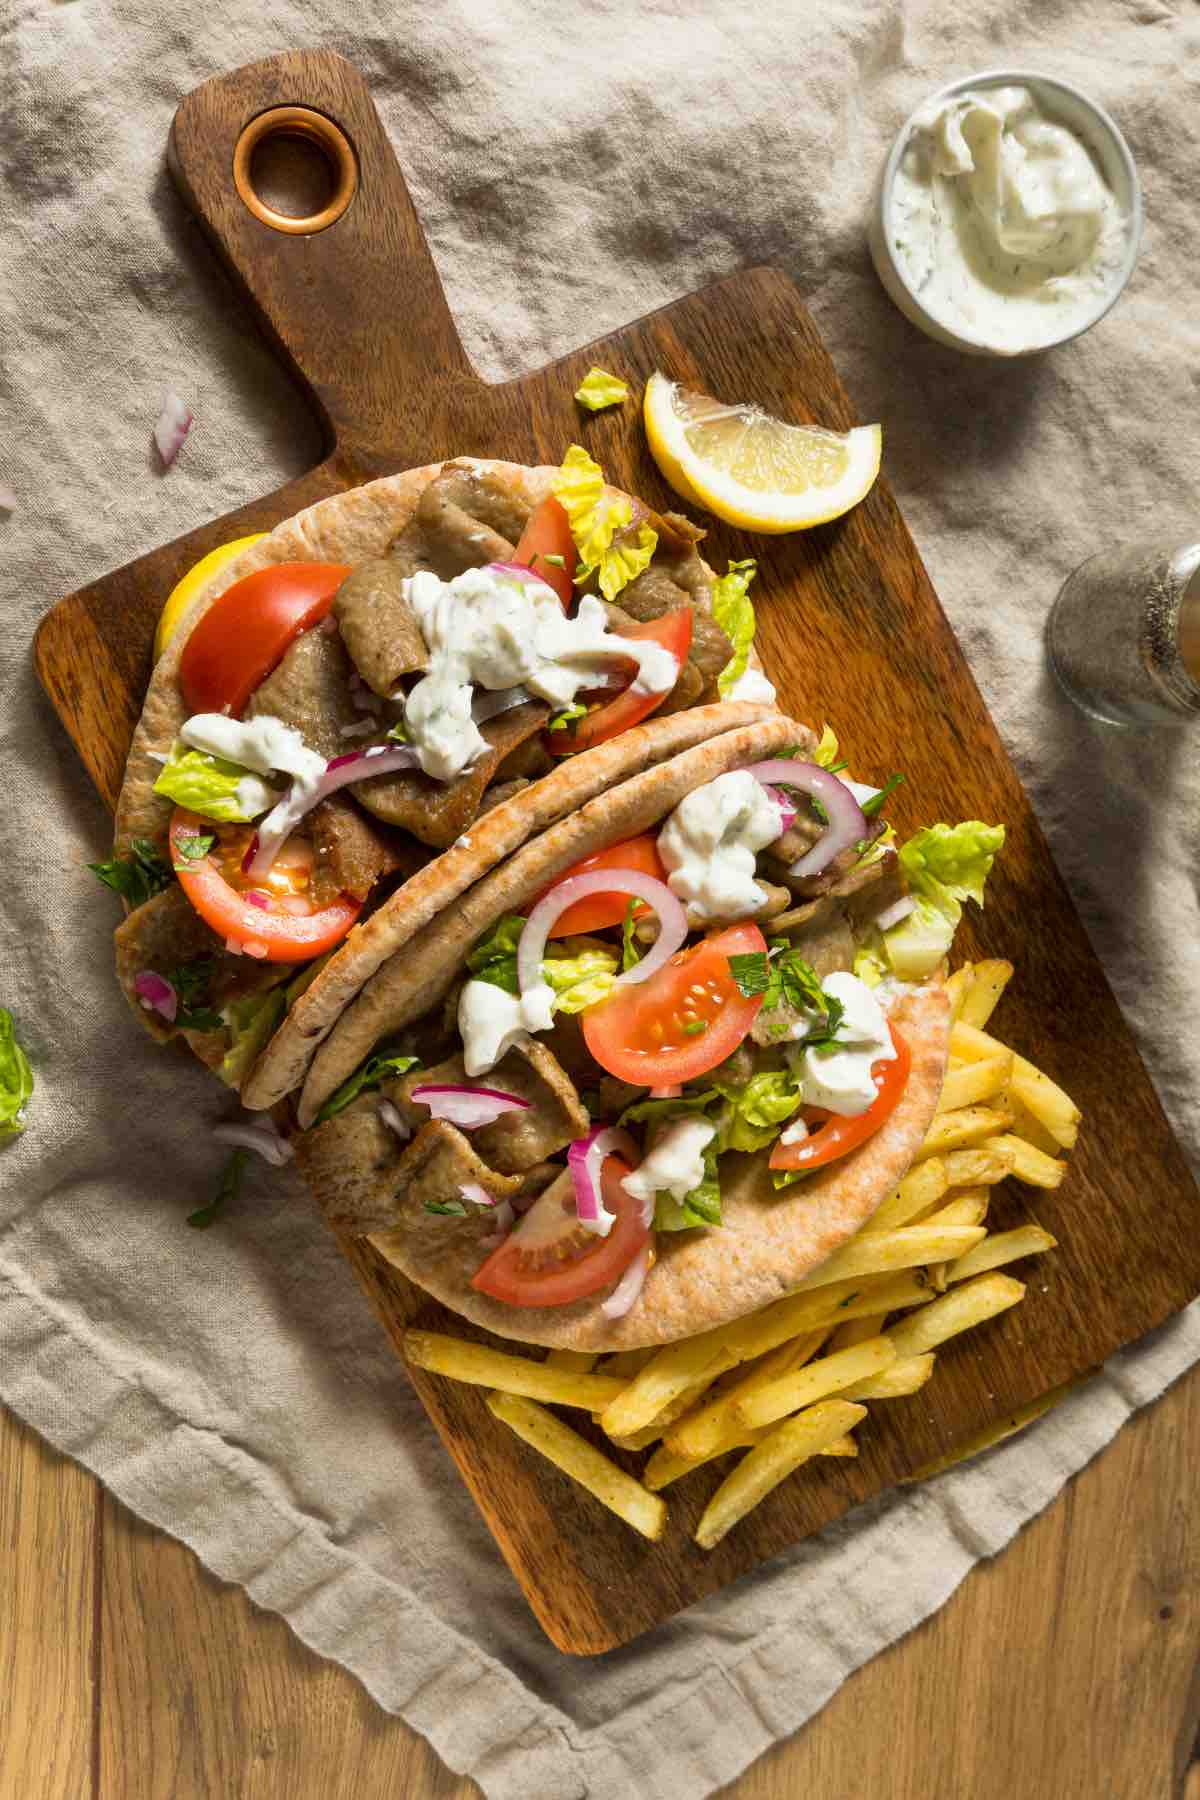 The Easy Greek Gyro Sandwich is gyro meat, fresh vegetables, and feta cheese wrapped in warm pita bread. You can top it with Tzatziki sauce, and it's the ultimate sandwich for Greek food lovers!